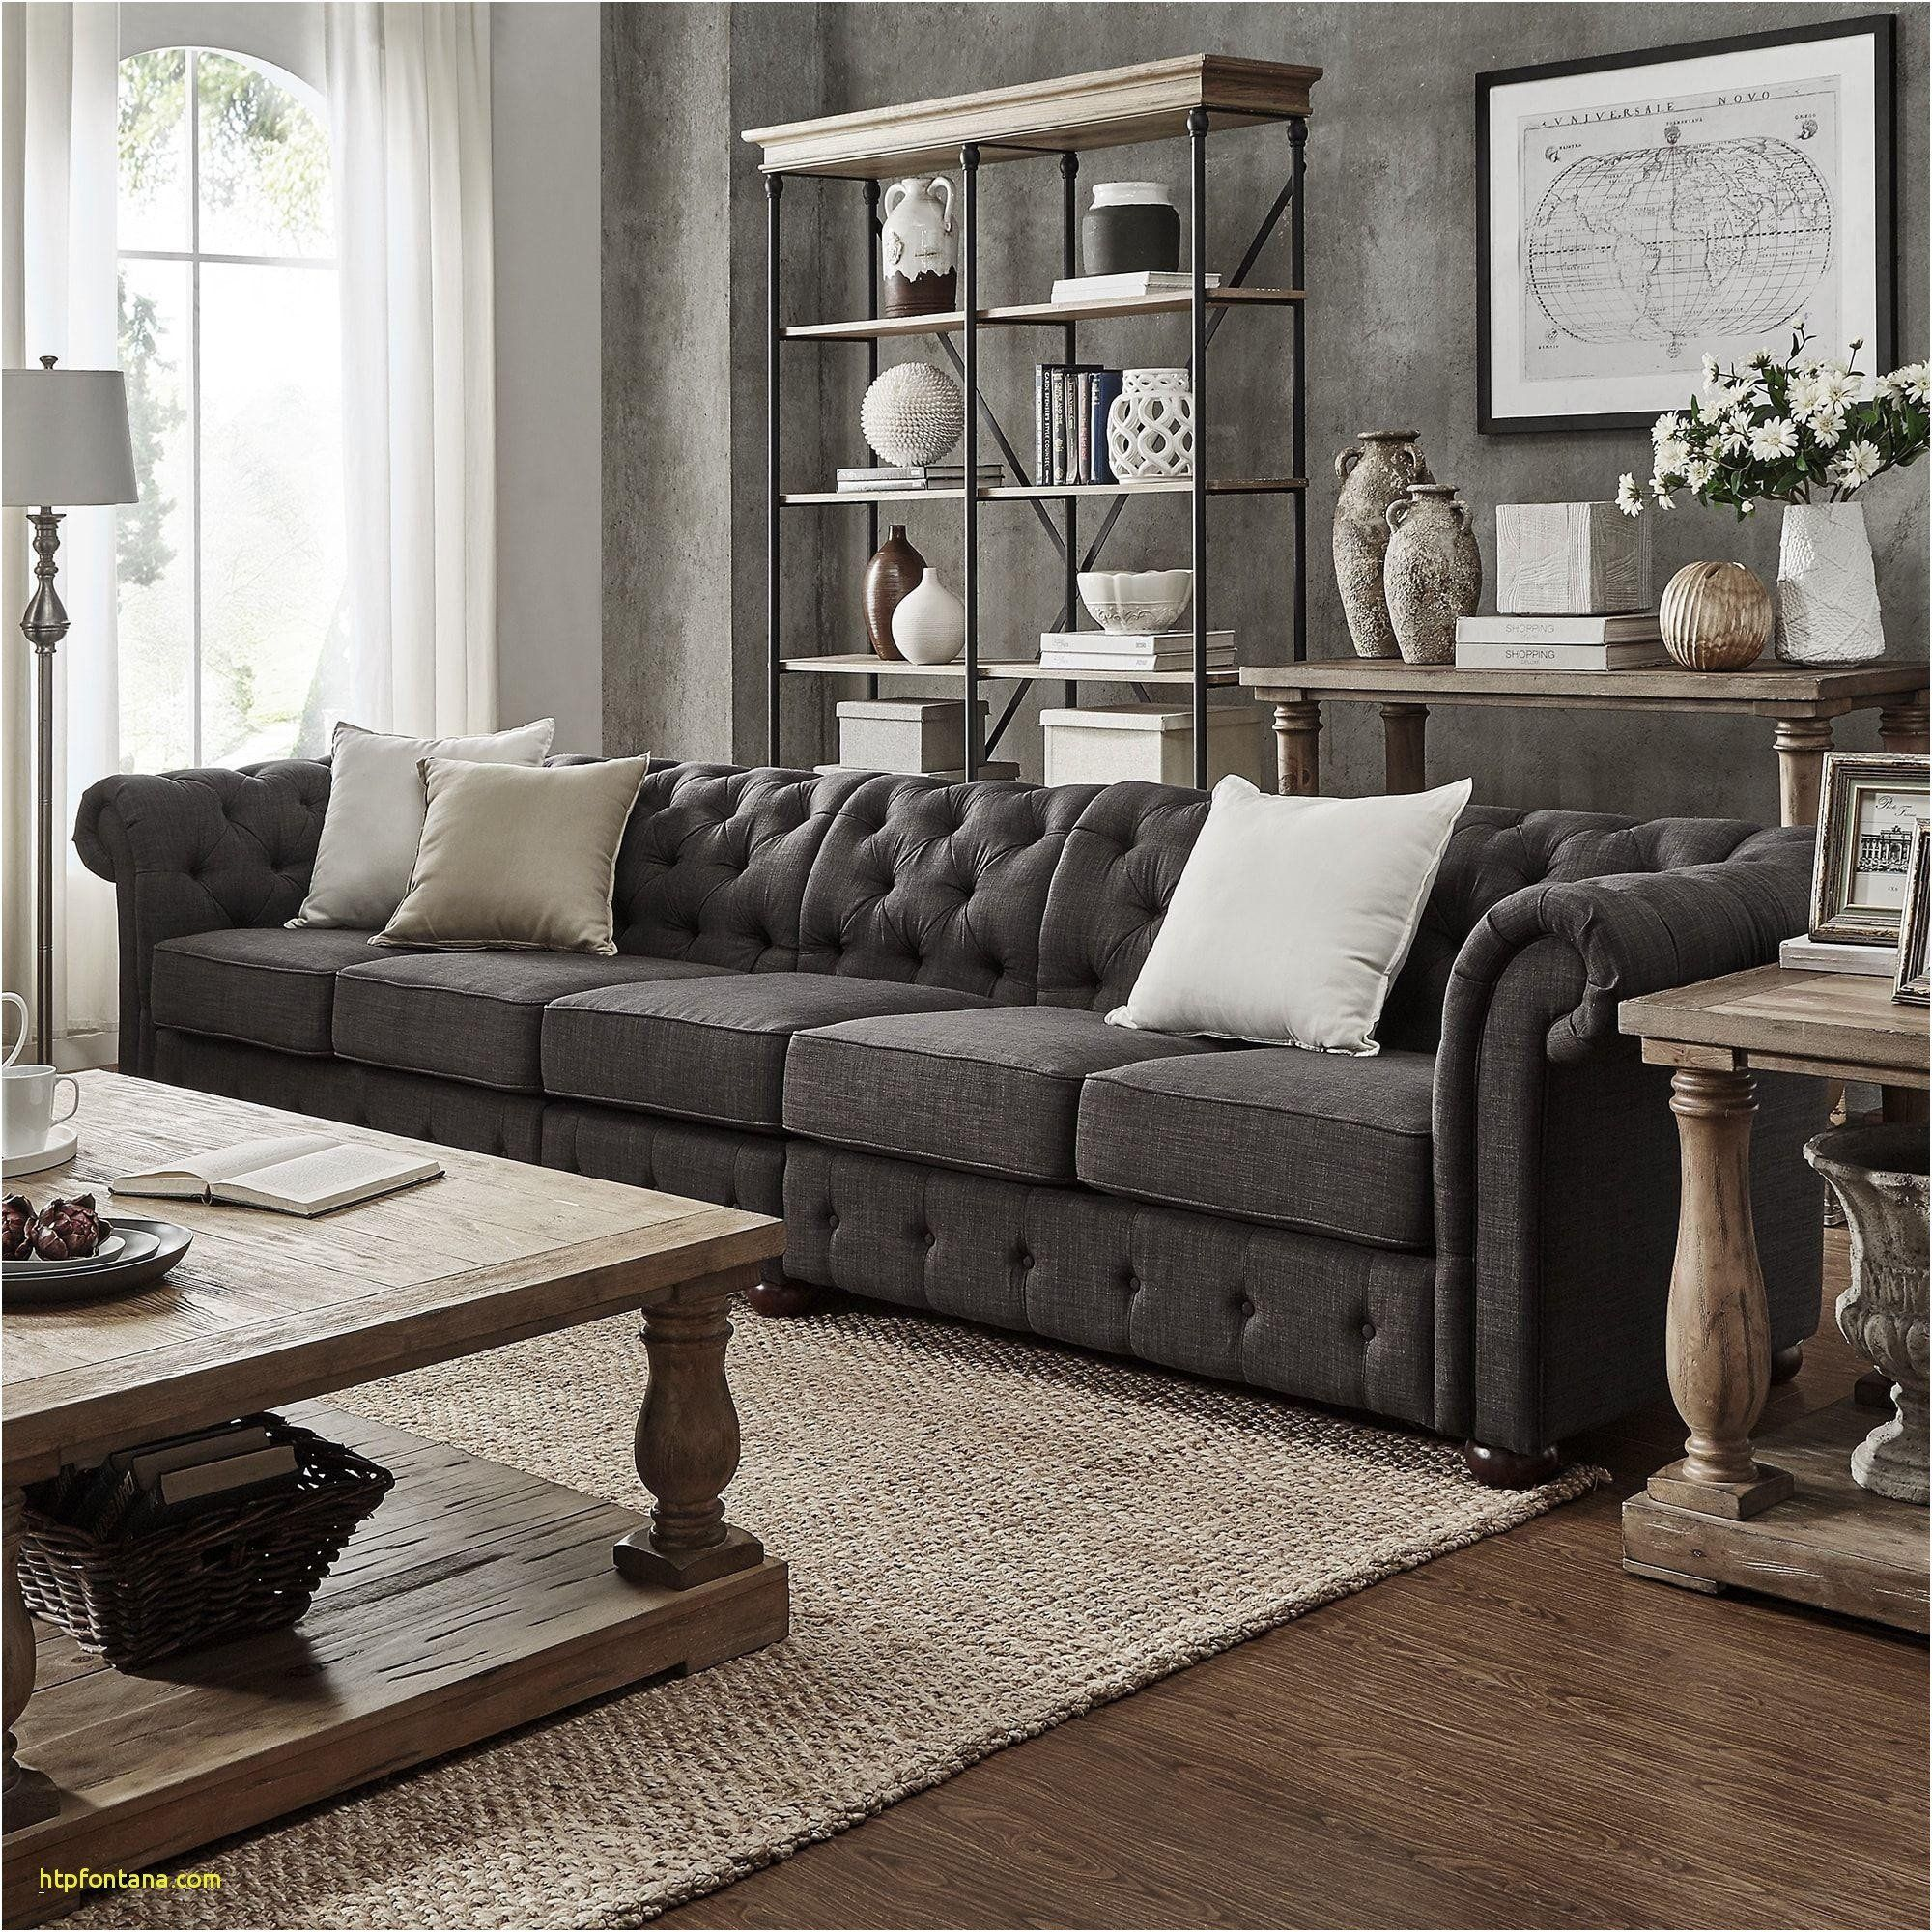 Small Living Room Sets Best Of Couch Set Awesome Grey Sofa Set New Sofa Size Luxury Tantra Grey Couch Living Room Grey Sofa Living Room Gray Sofa Living